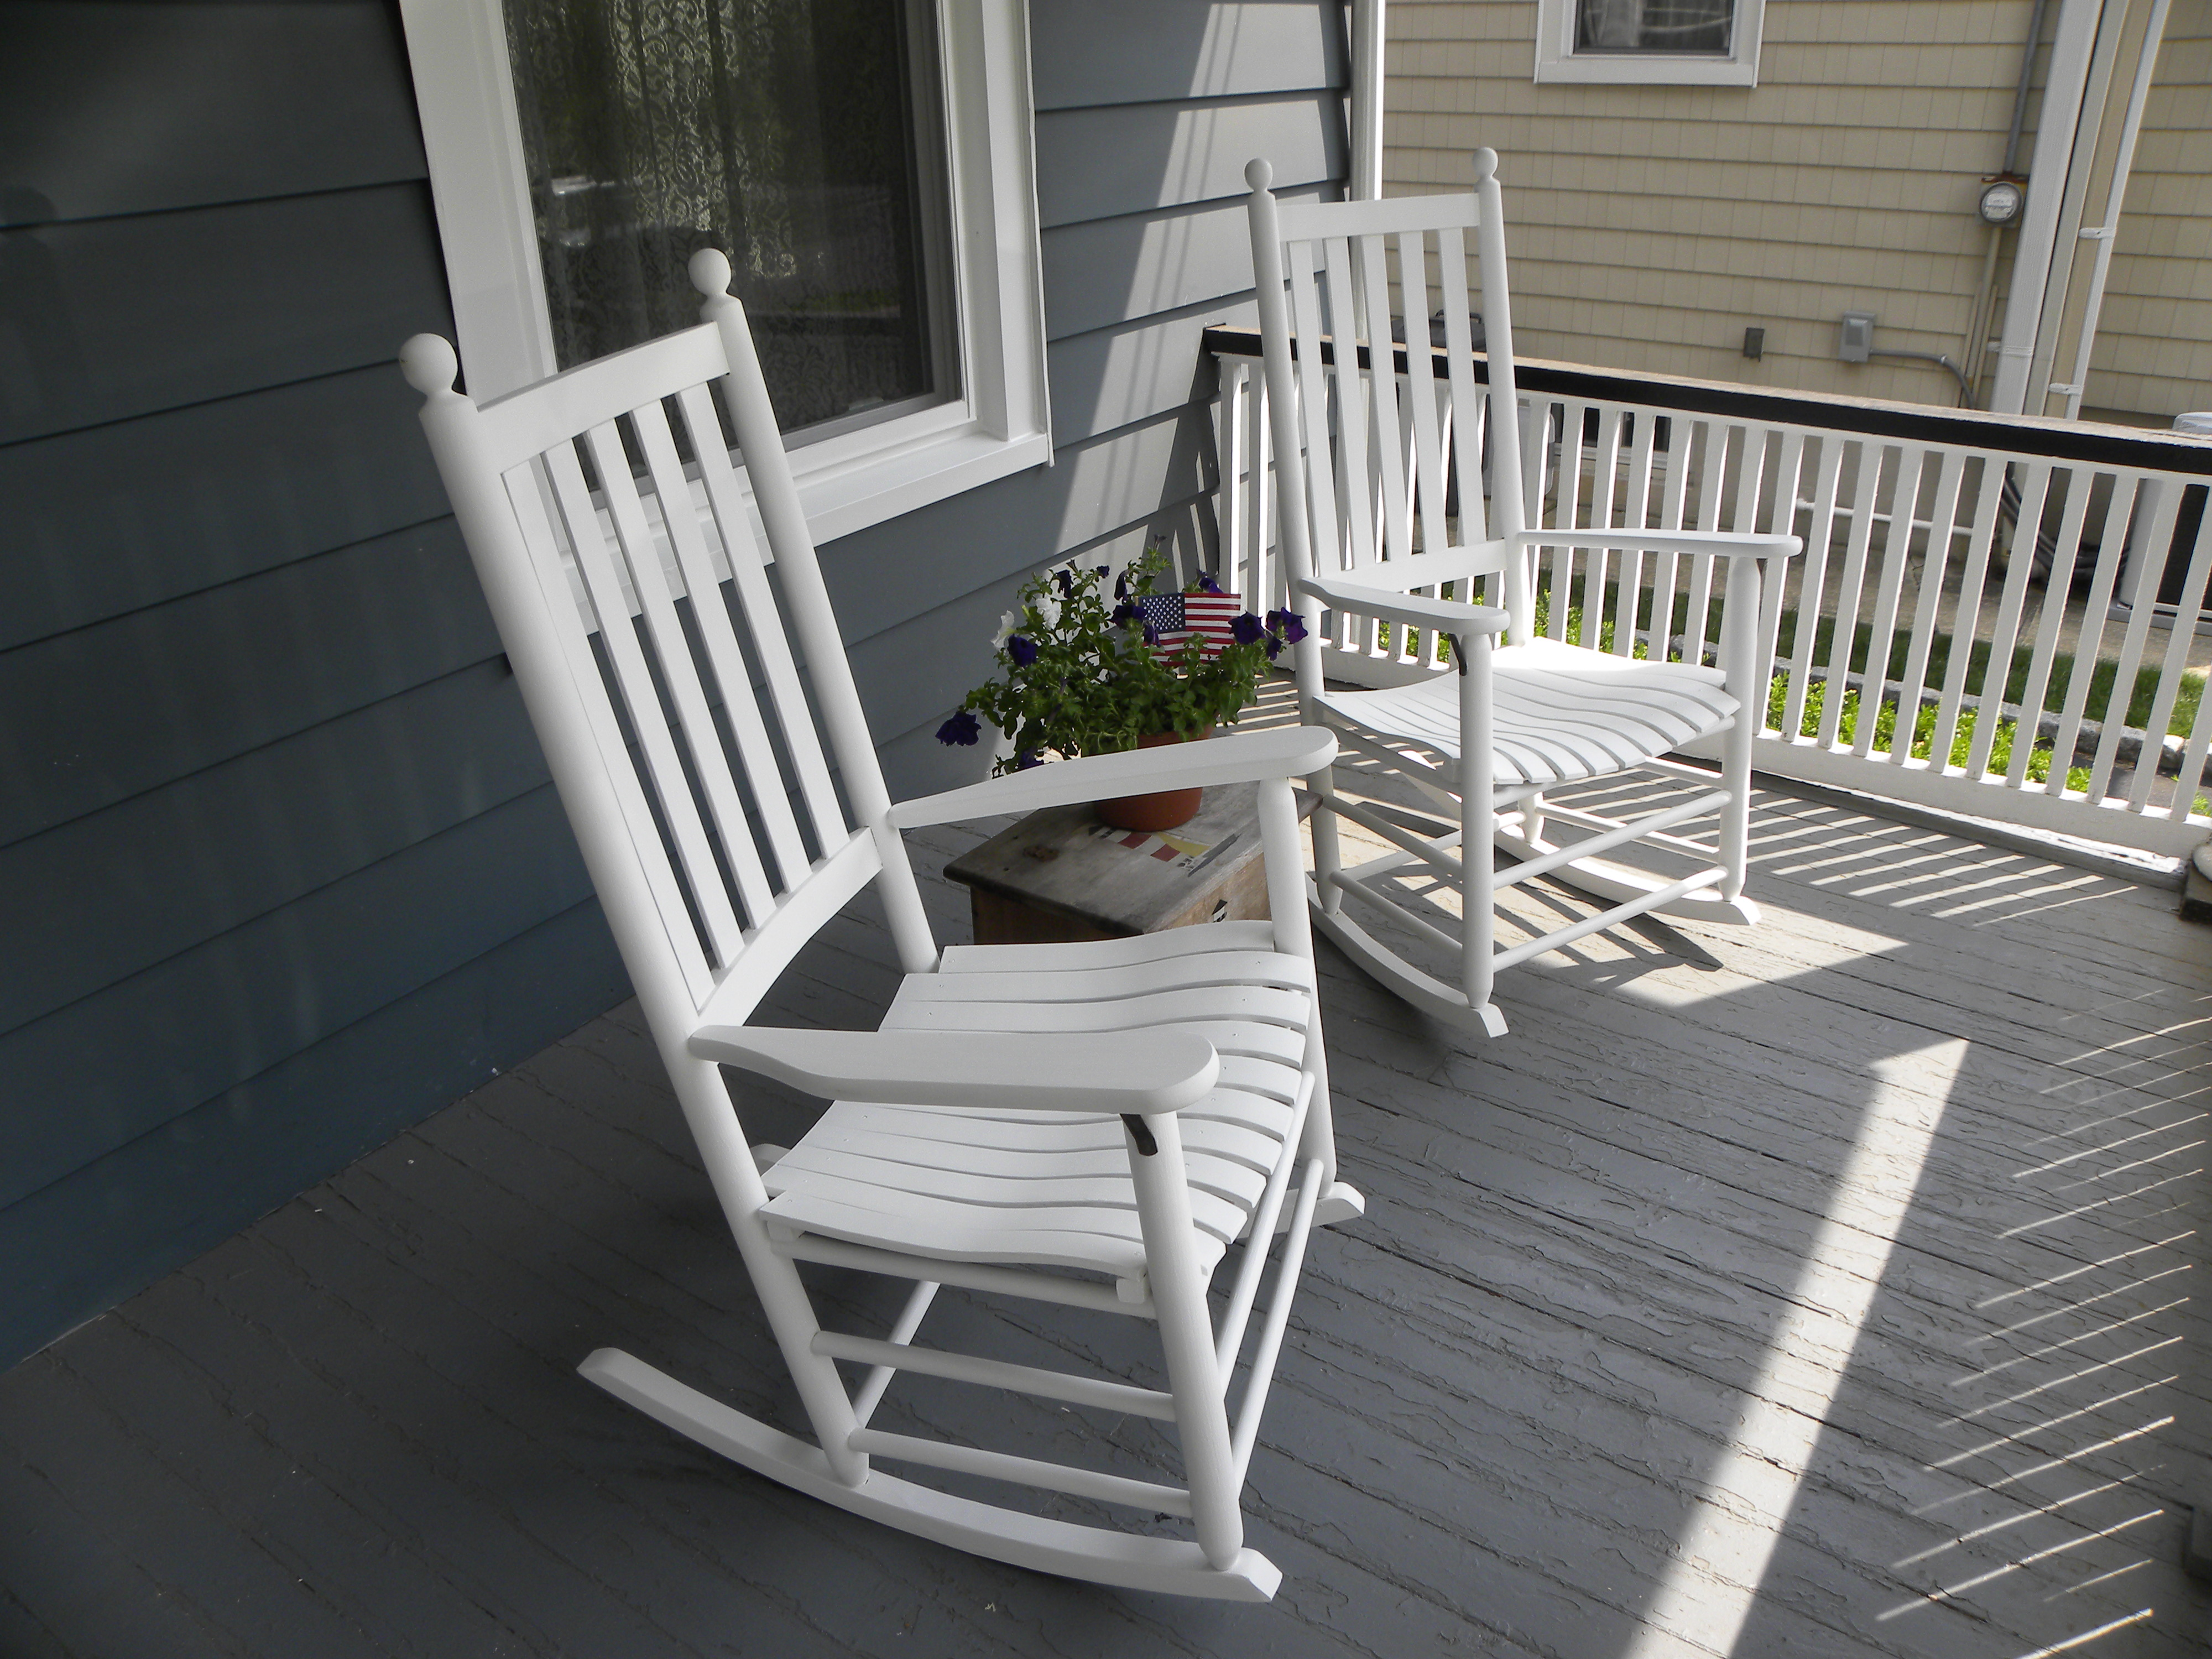 furniture tractor wicker porch chairs rocking cottage great photos folding zurich white fashioned exercise probably chair old coaching hollow wooden oak retro super supply ikea outdoor melbourne red front